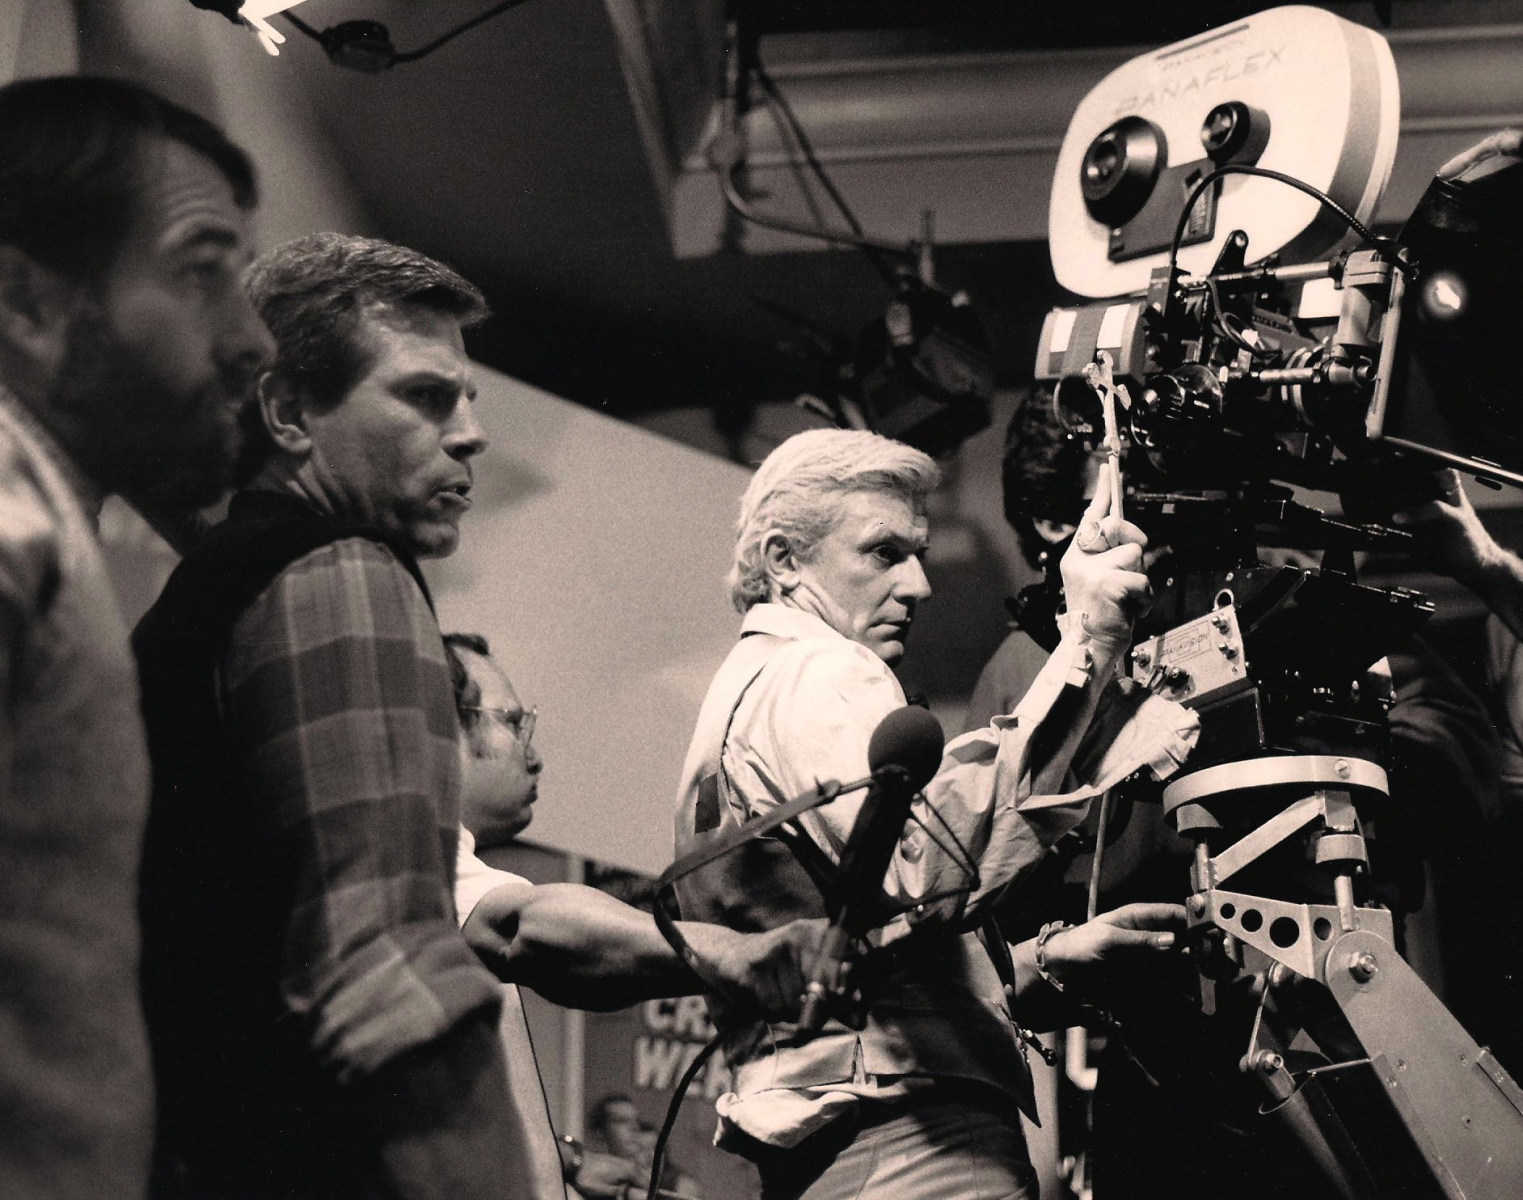 On The Set Of Fright Night (1985) Behind the Scenes